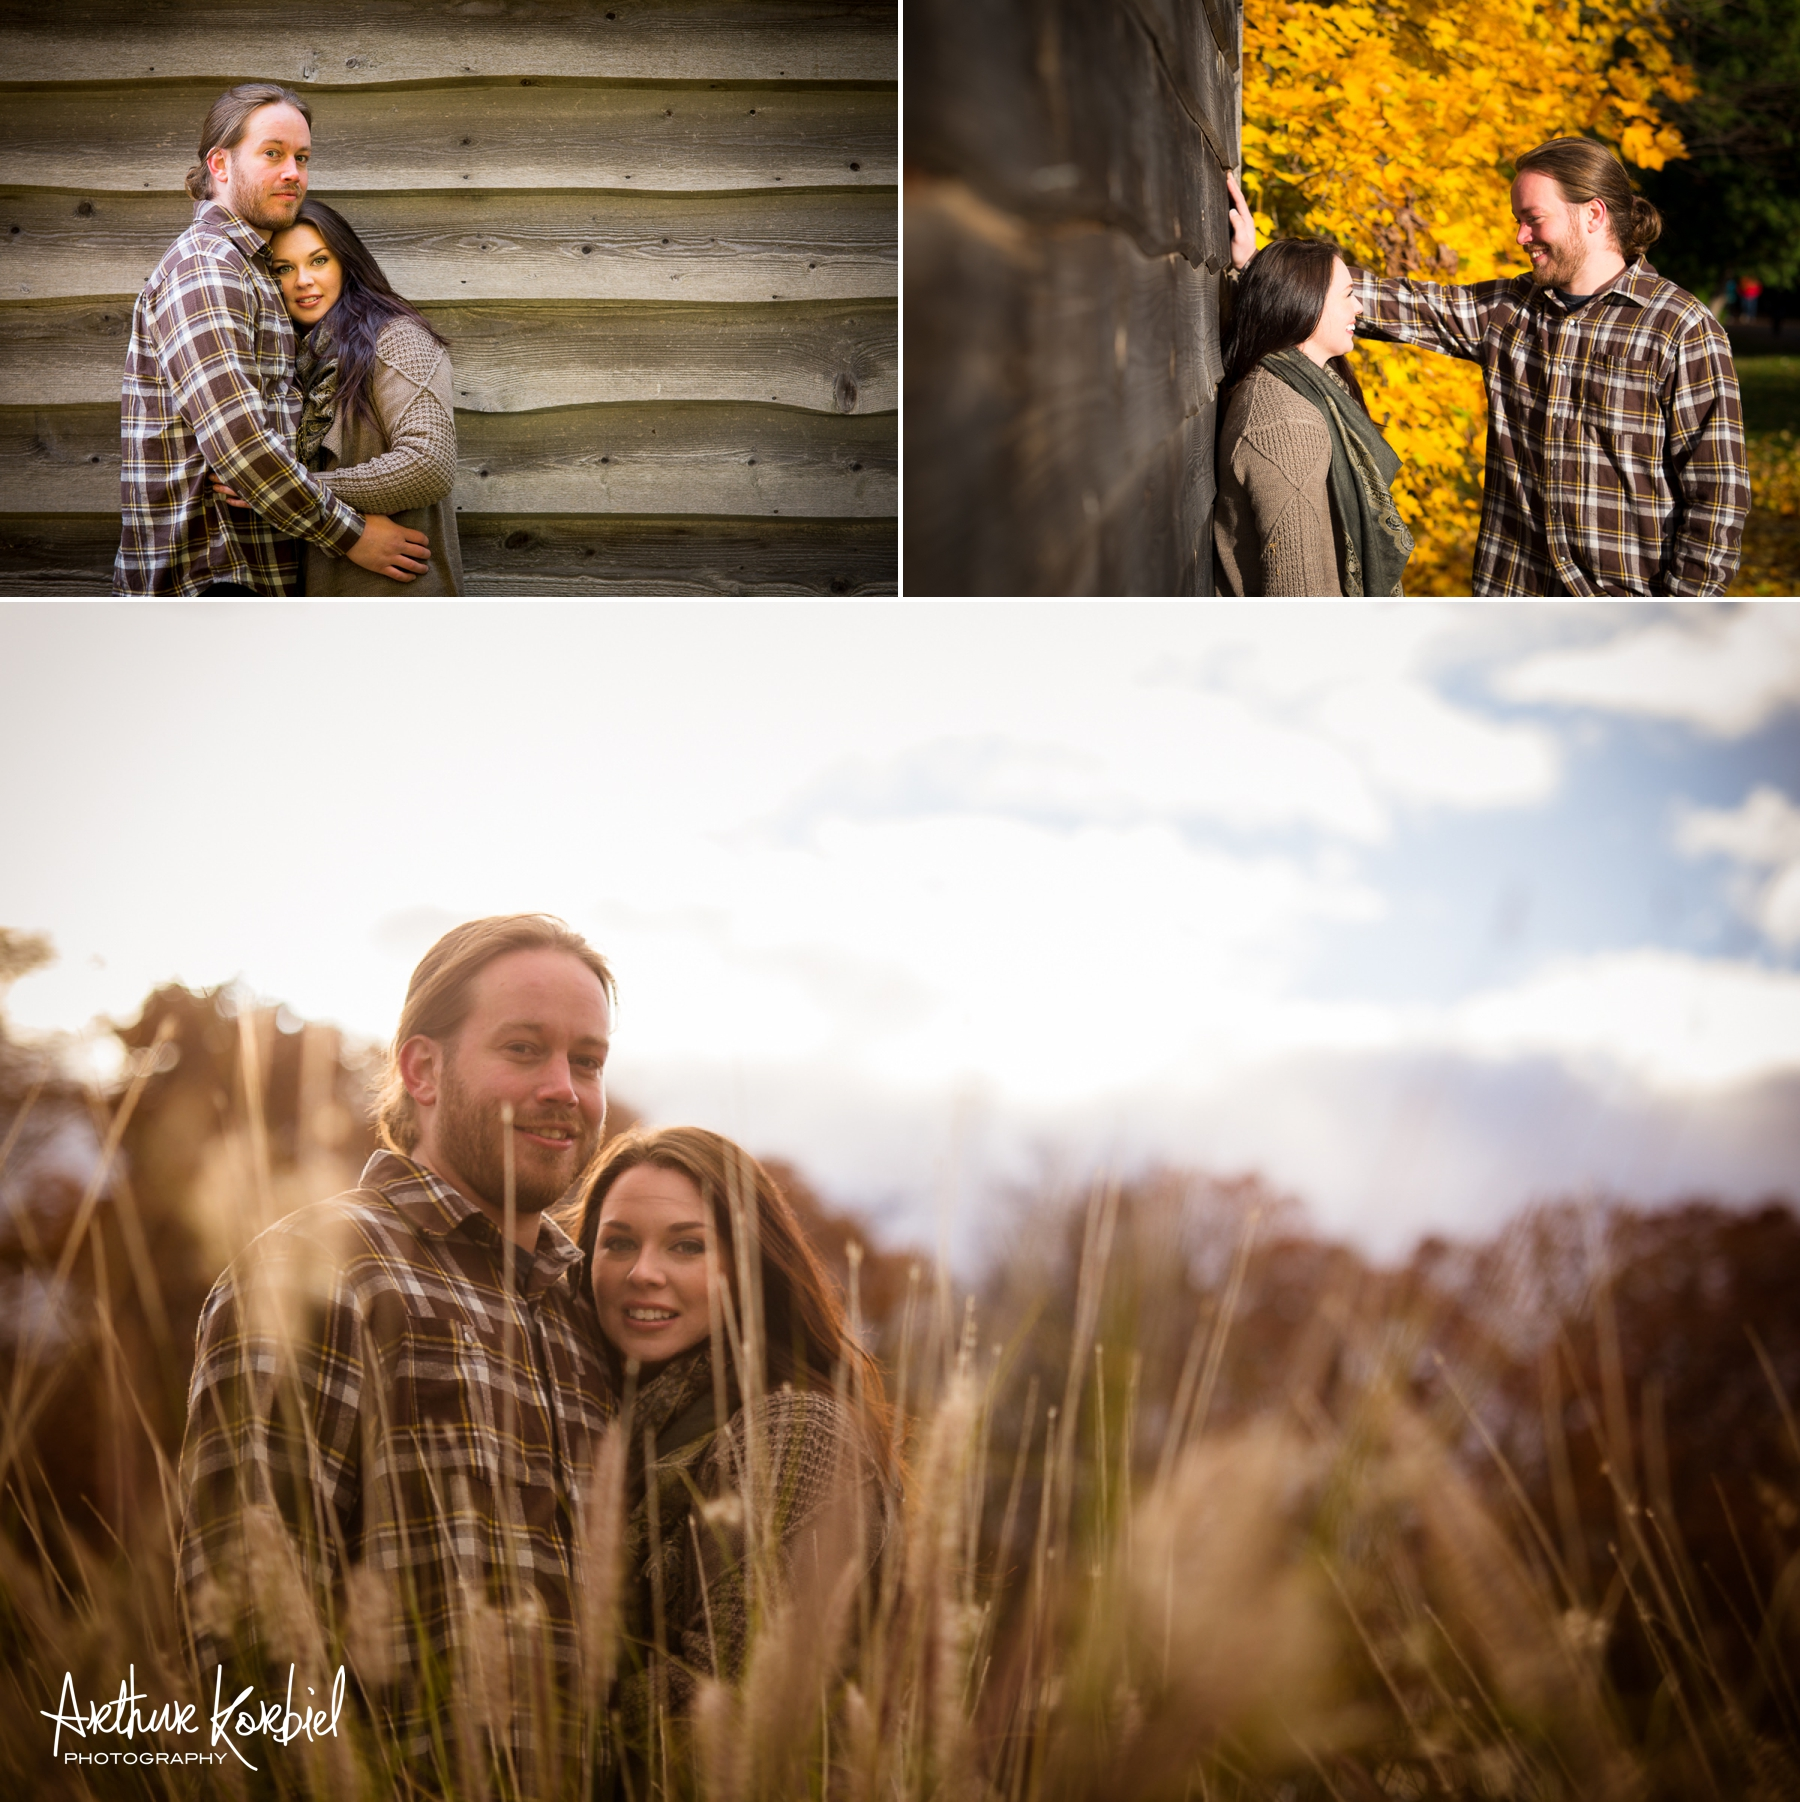 Arthur Korbiel Photography - London Engagement Photographer - Heather & Addison_003.jpg